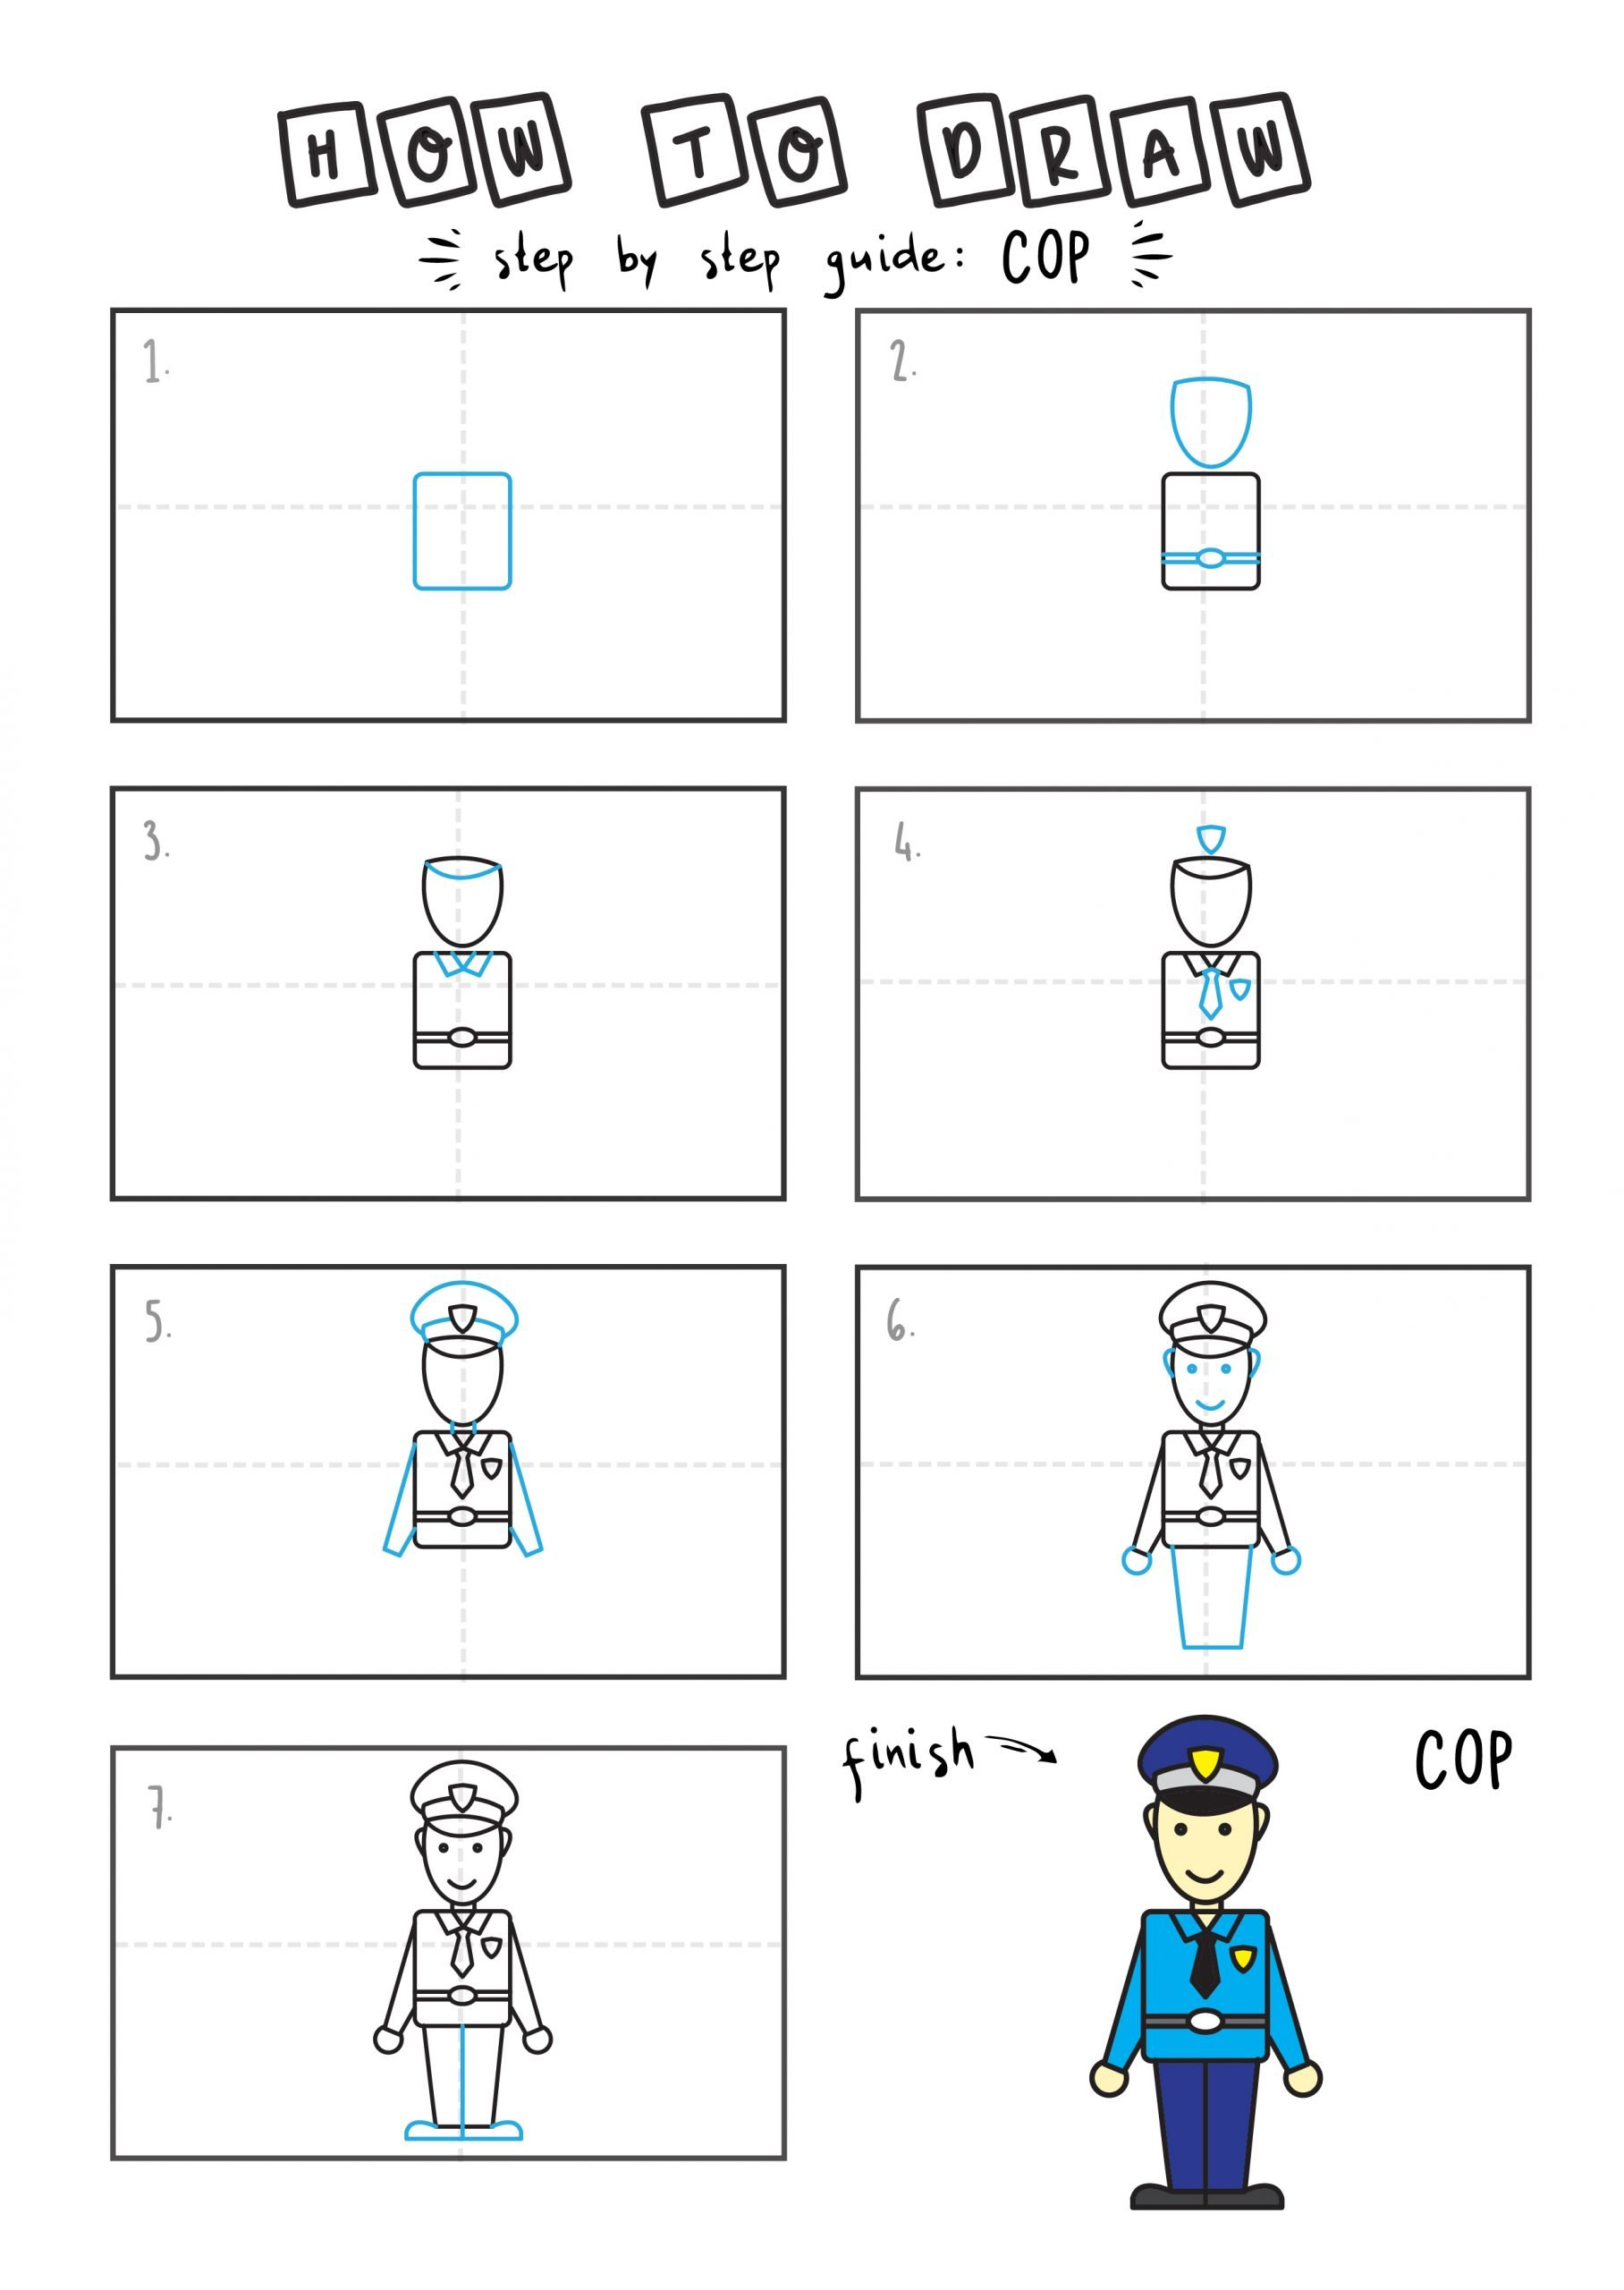 How to draw a cute chibi cartoon cop step by step for children EAsy simple tutorial